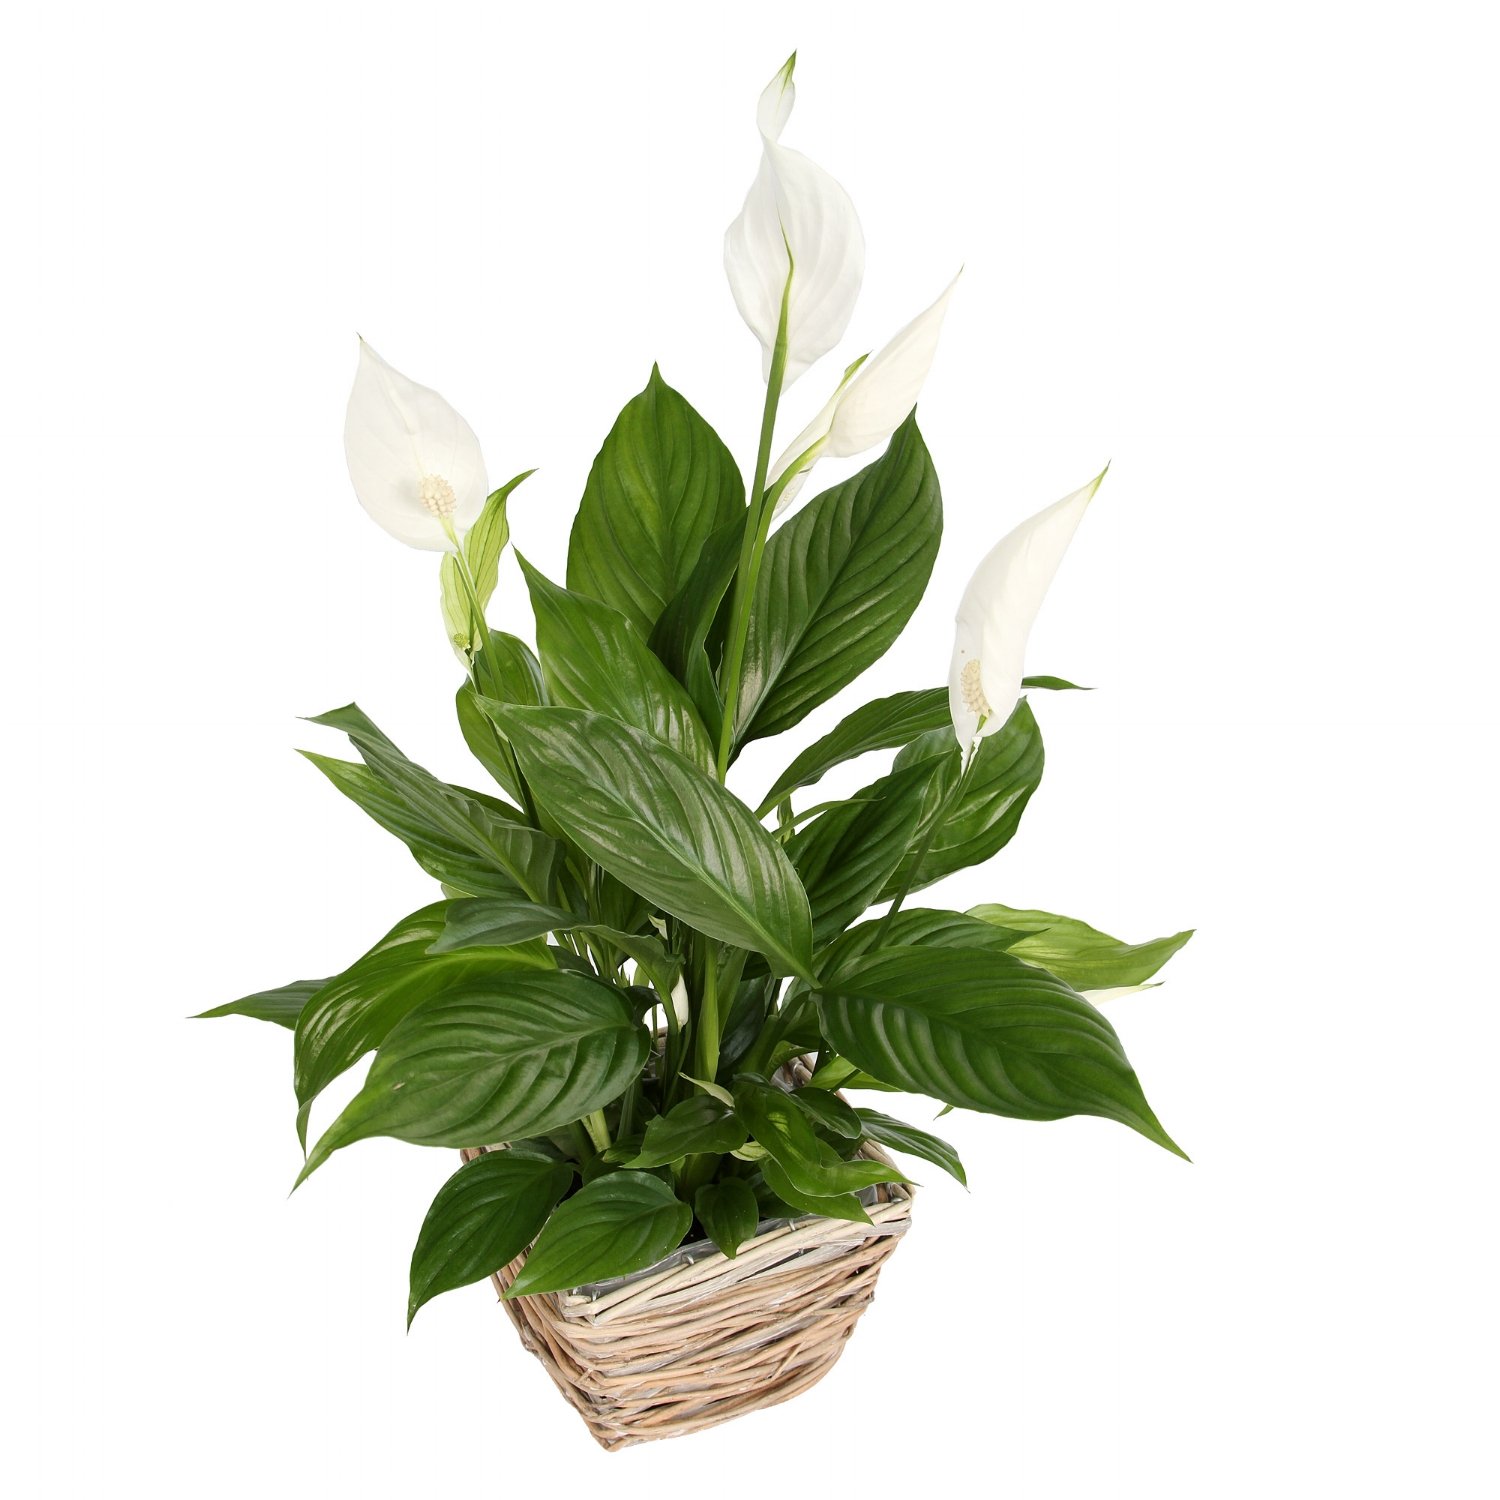 6. Peace lily - Bright light but no direct sun - tolerates low light but may not flowerWater at least once a week and keep soil evenly moist - make sure pot has drainage holes to prevent root rotDroops dramatically when needs water, may even look dead, but springs back to life after a good soakingProduces lovely white blooms(toxic to dogs & cats)